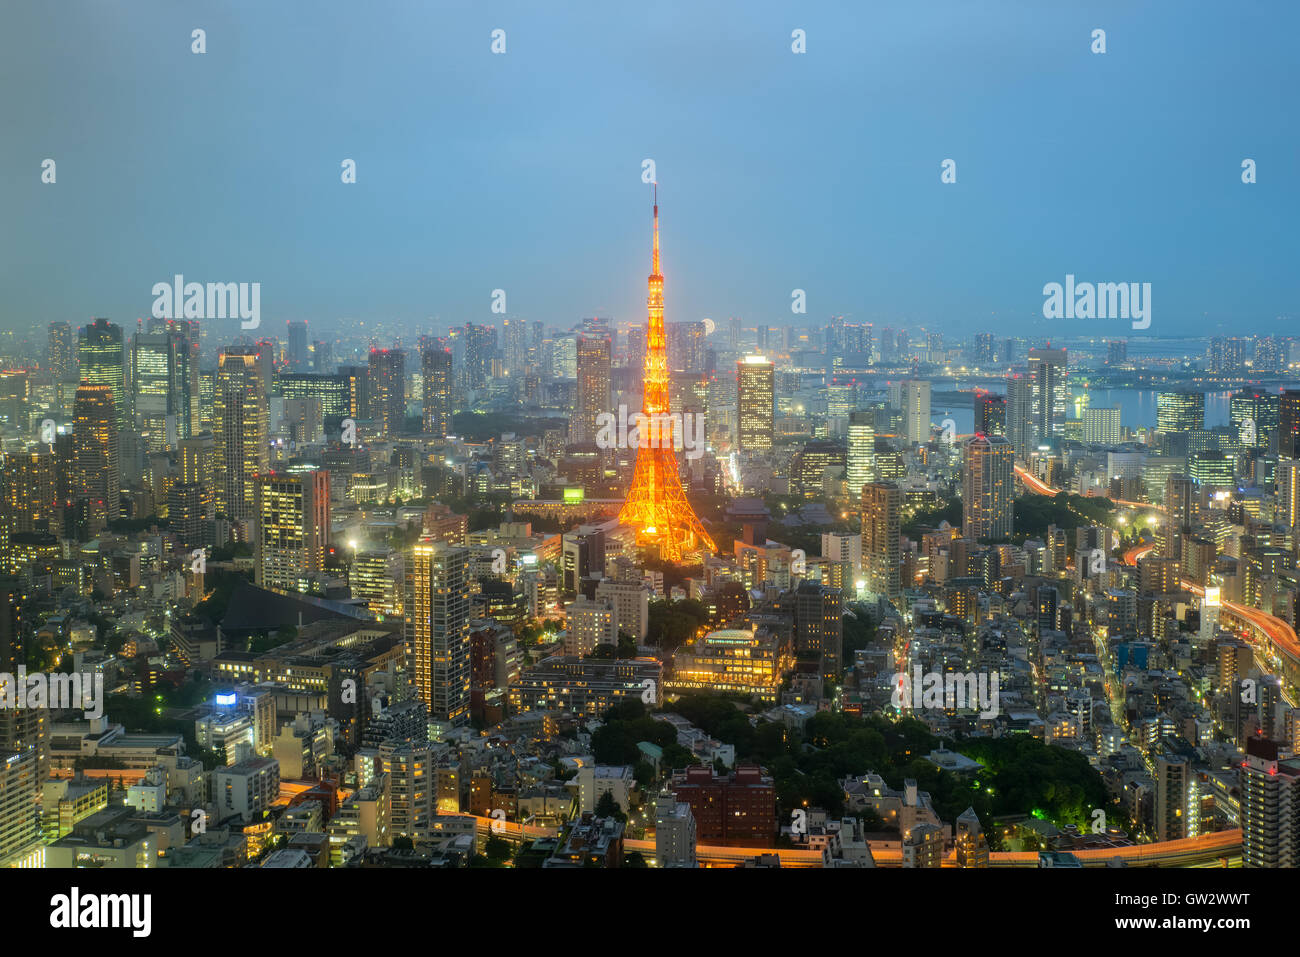 Tokyo tower and Tokyo city skyline and skyscraper in night at Tokyo, Japan - Stock Image